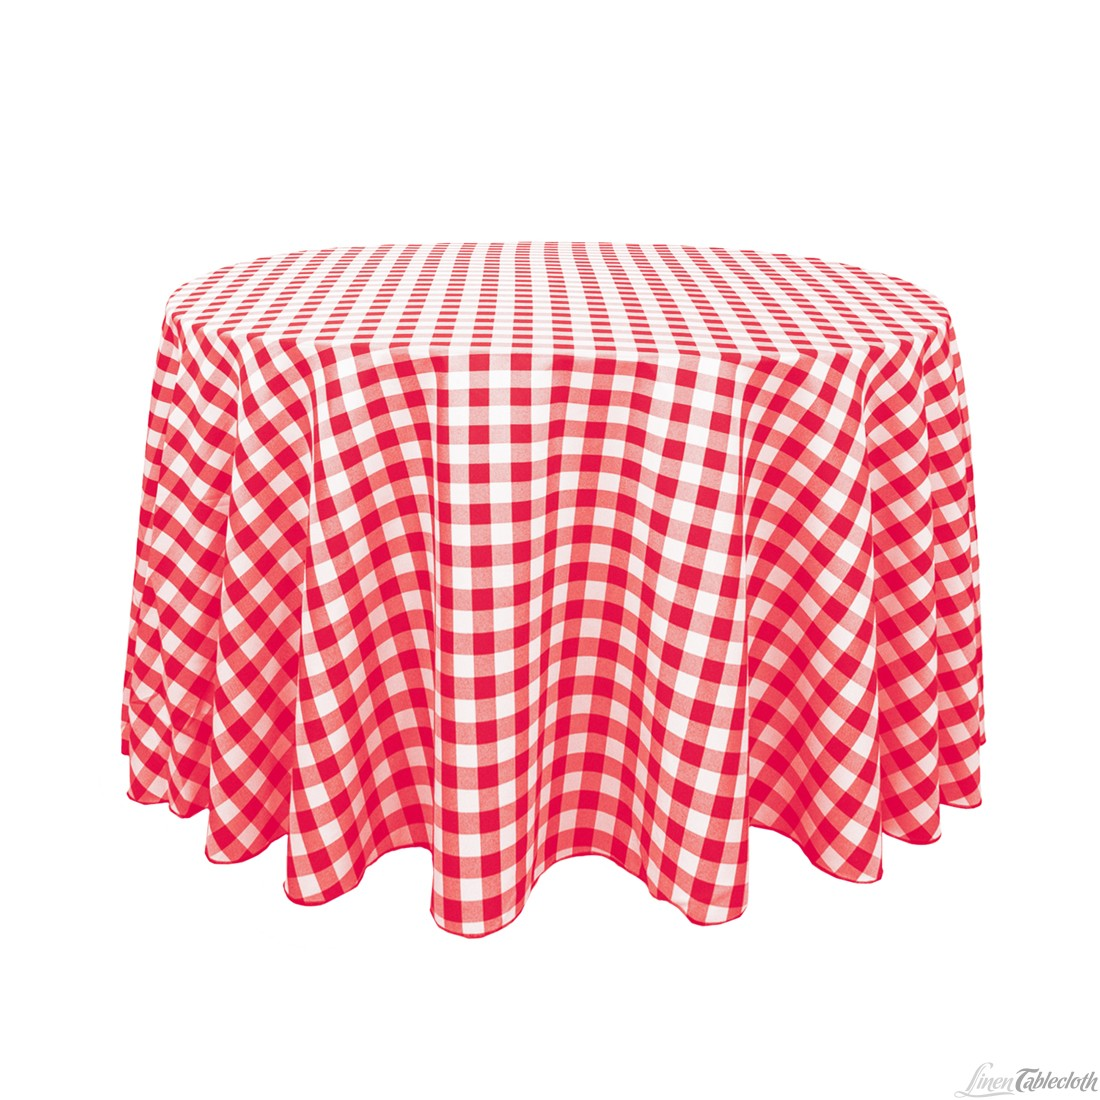 Clipart of a table cloth.